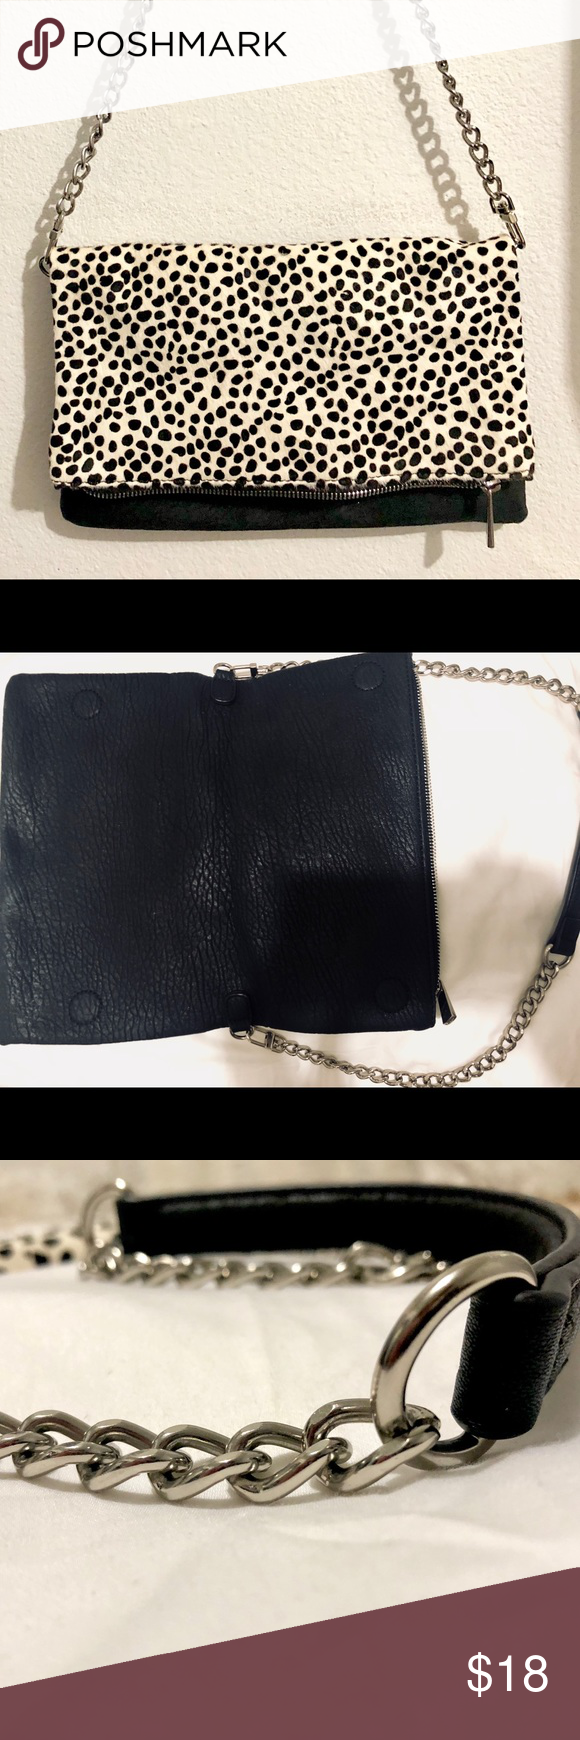 c8f5a2708ce8 Express faux fur fold-over crossbody Excellent condition! Beautiful  monochromatic animal print Detachable chain strap Perfect going out bag!